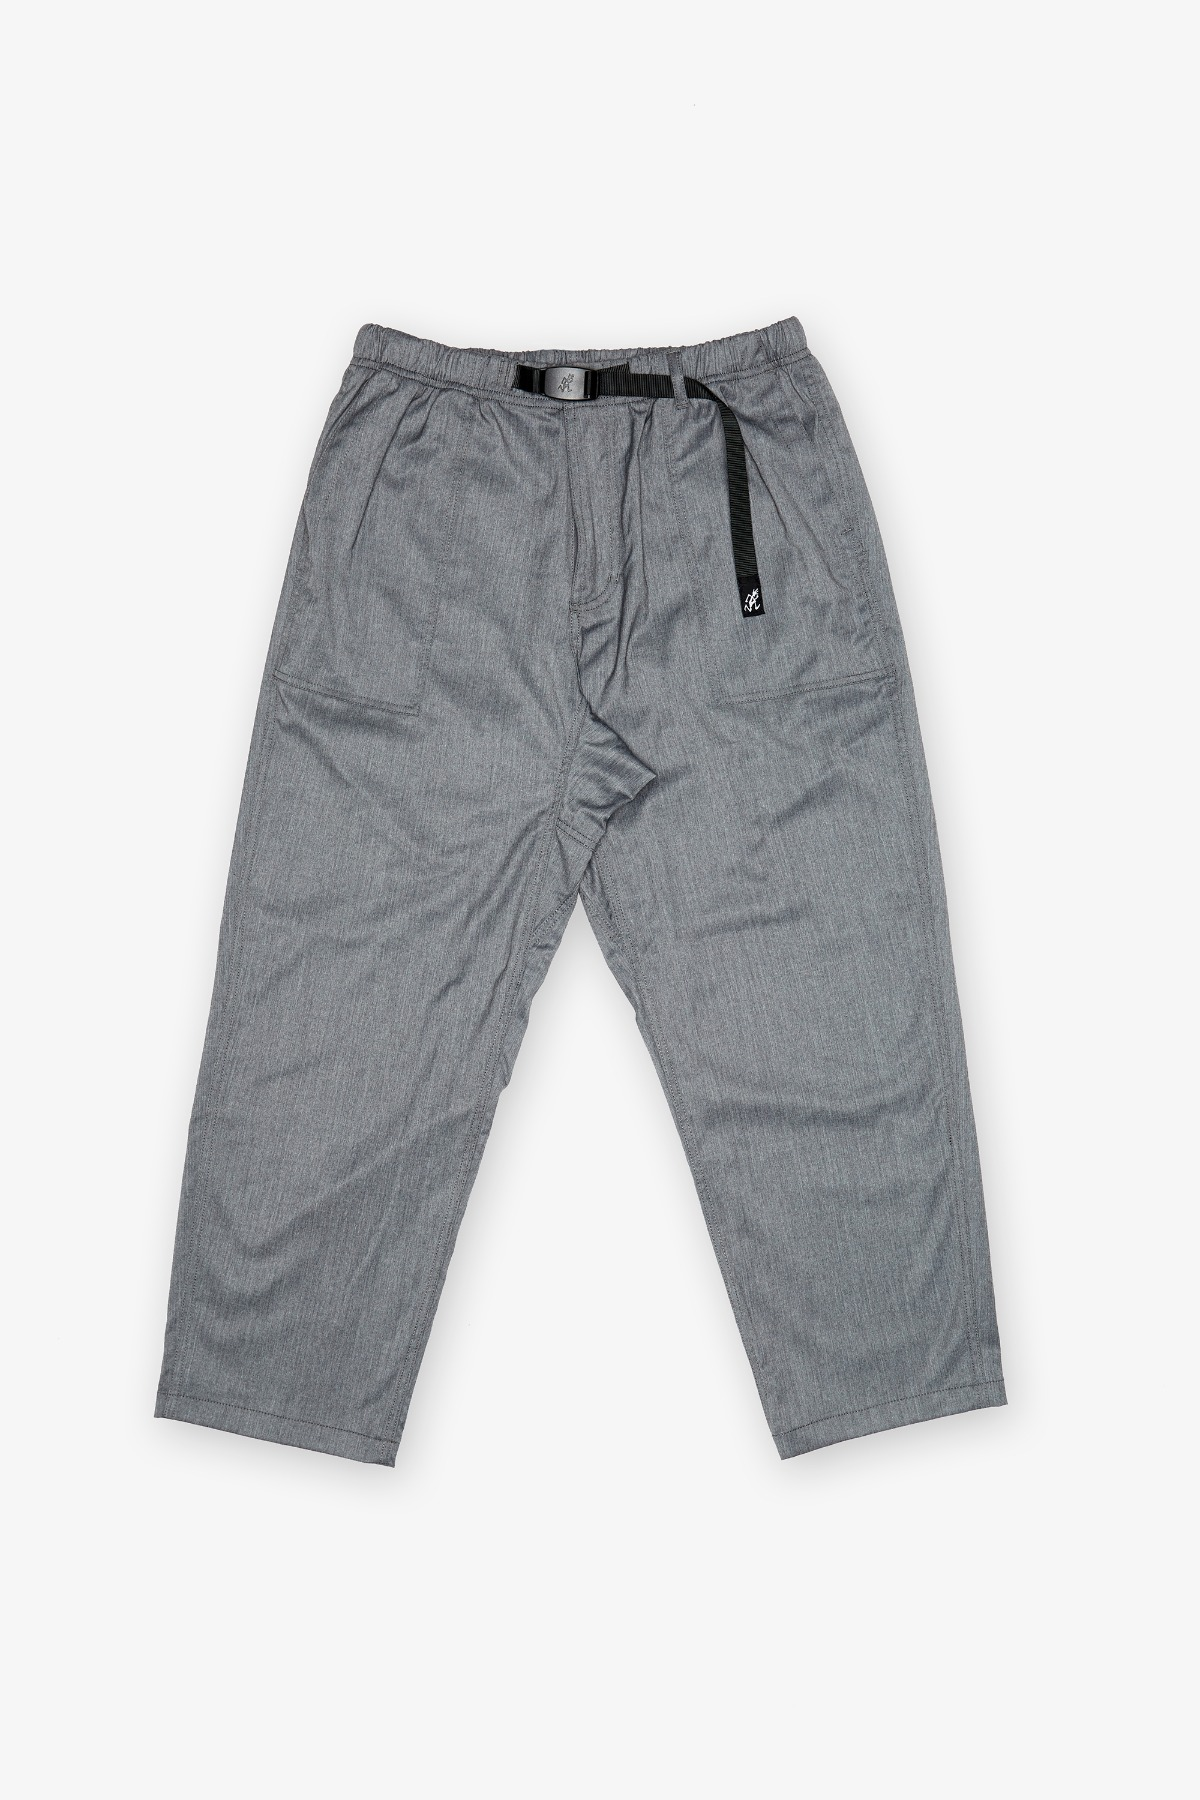 GABARDINE LOOSE TAPERED PANTS GREY